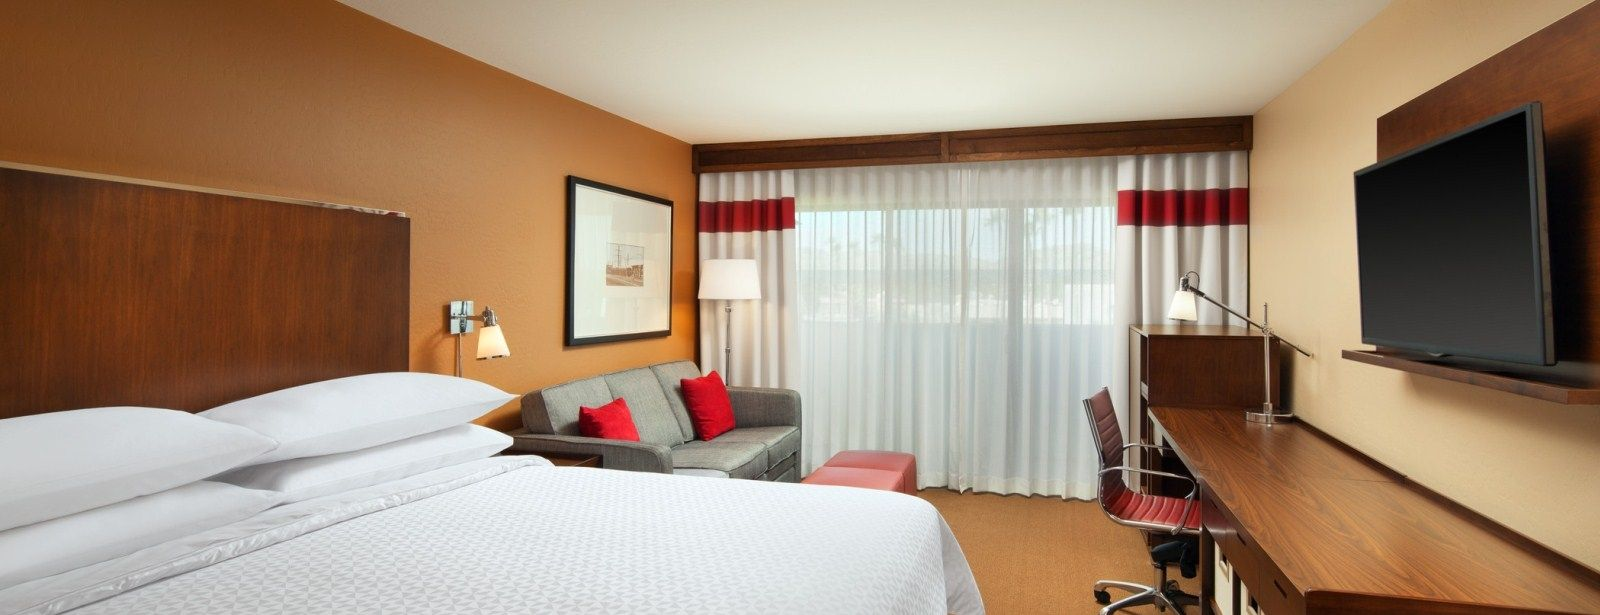 Phoenix Accommodations - Traditional Guest Room